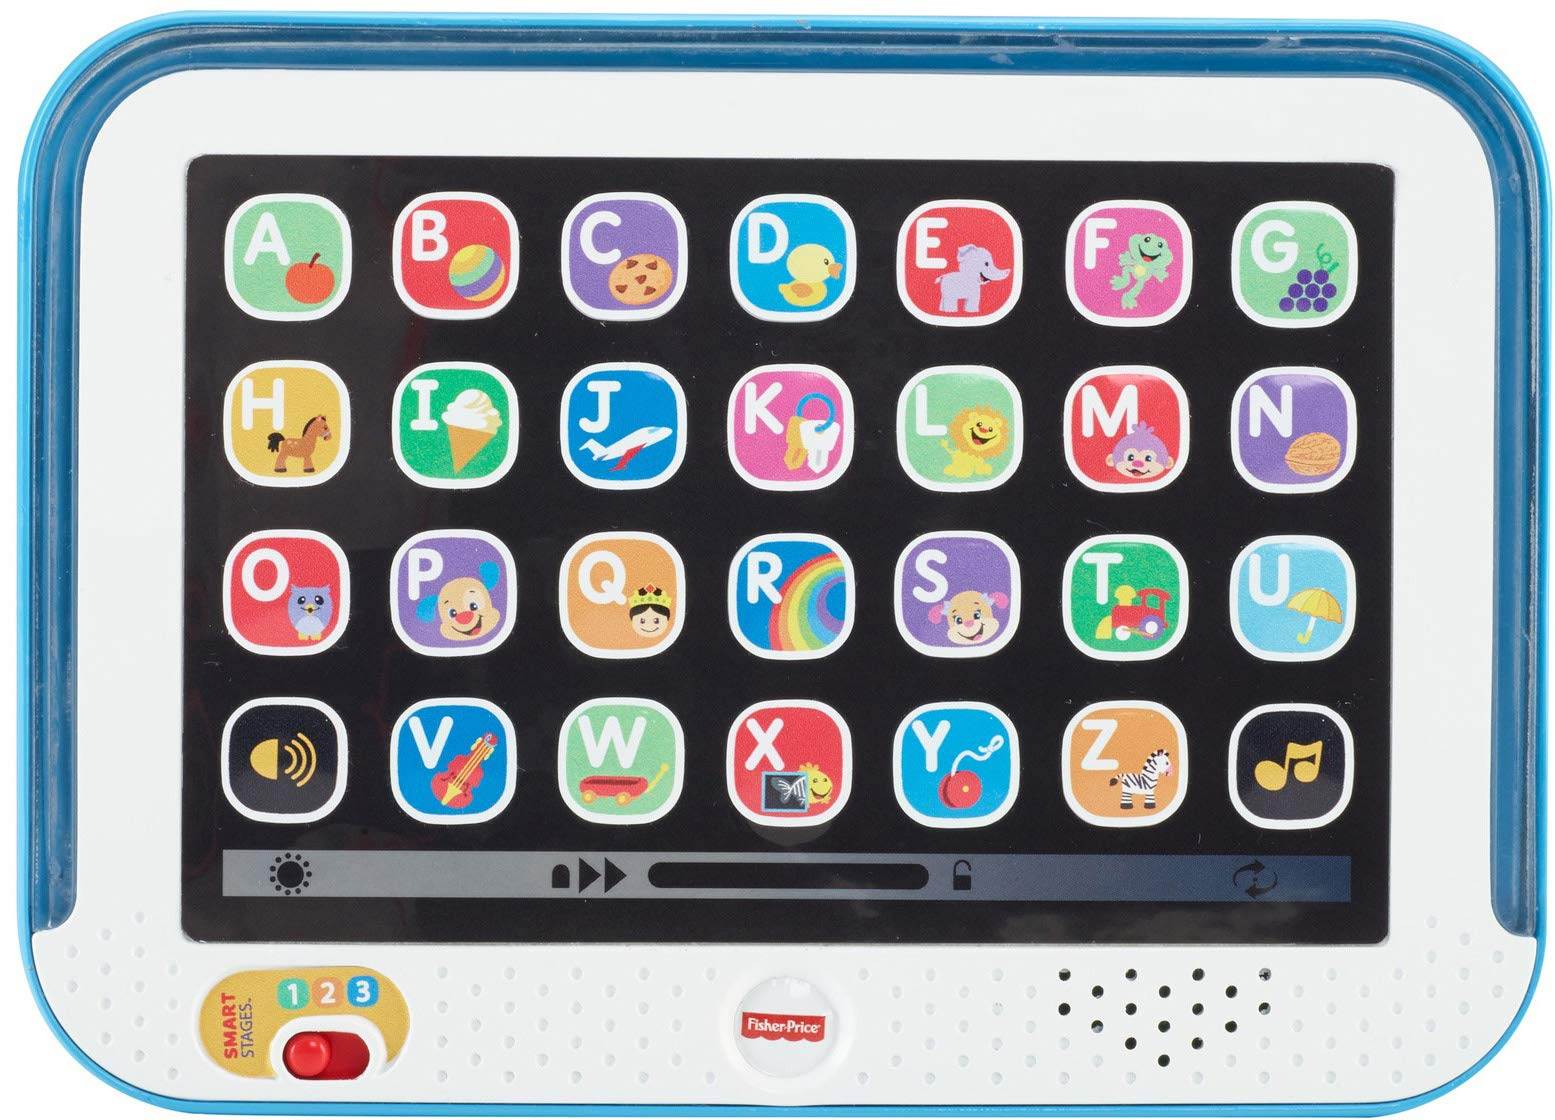 Fisher-Price Laugh & Learn Smart Stages Tablet, Blue by Fisher-Price (Image #1)